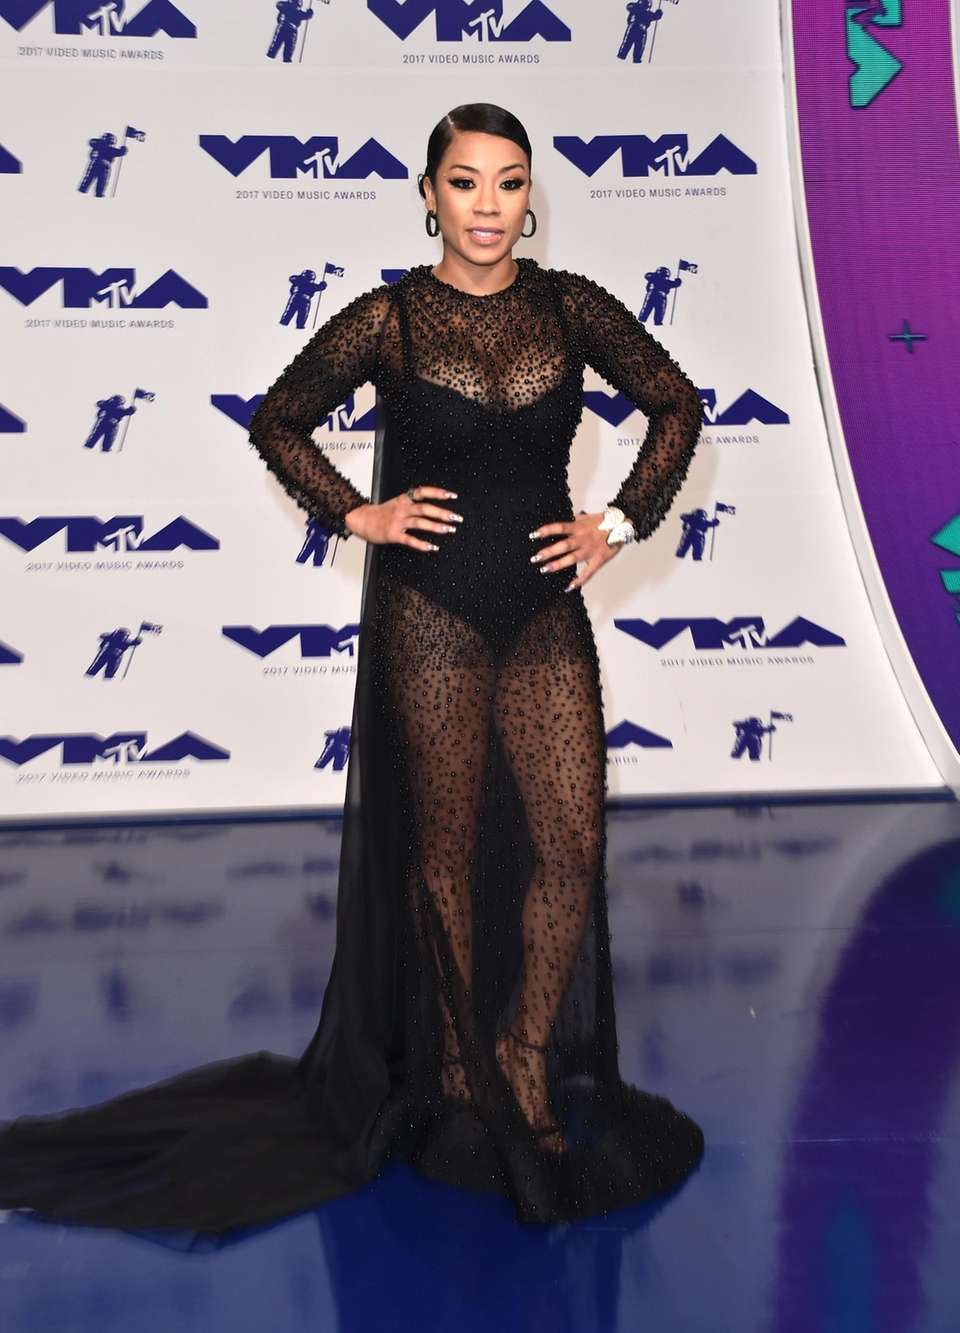 Singer Keyshia Cole was born on Oct. 15,